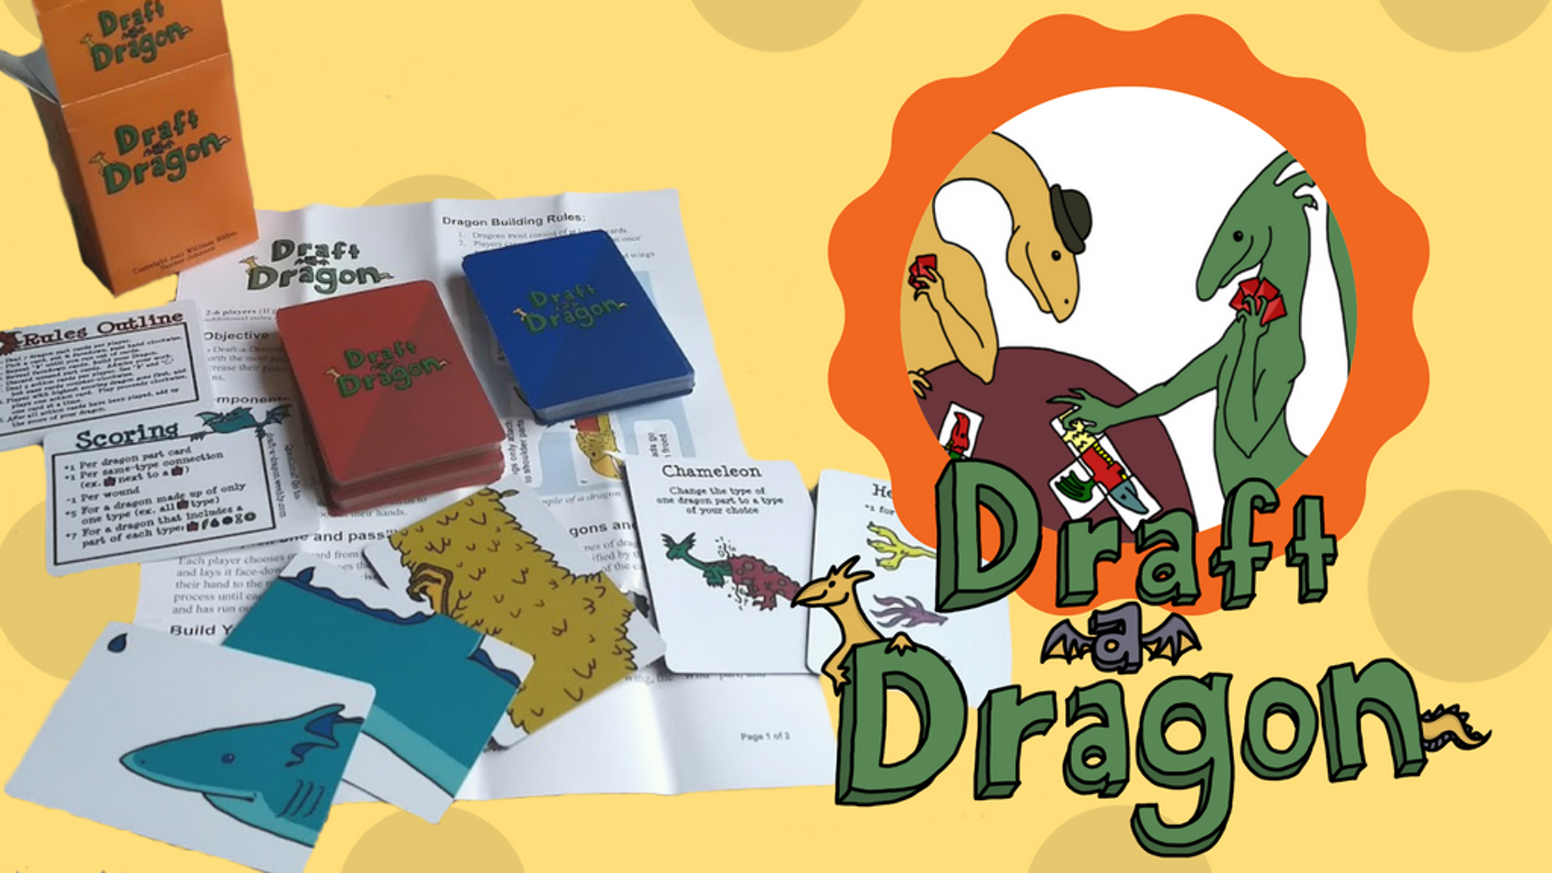 Draft-a-Dragon, the Dragon Crafting Card Game by William